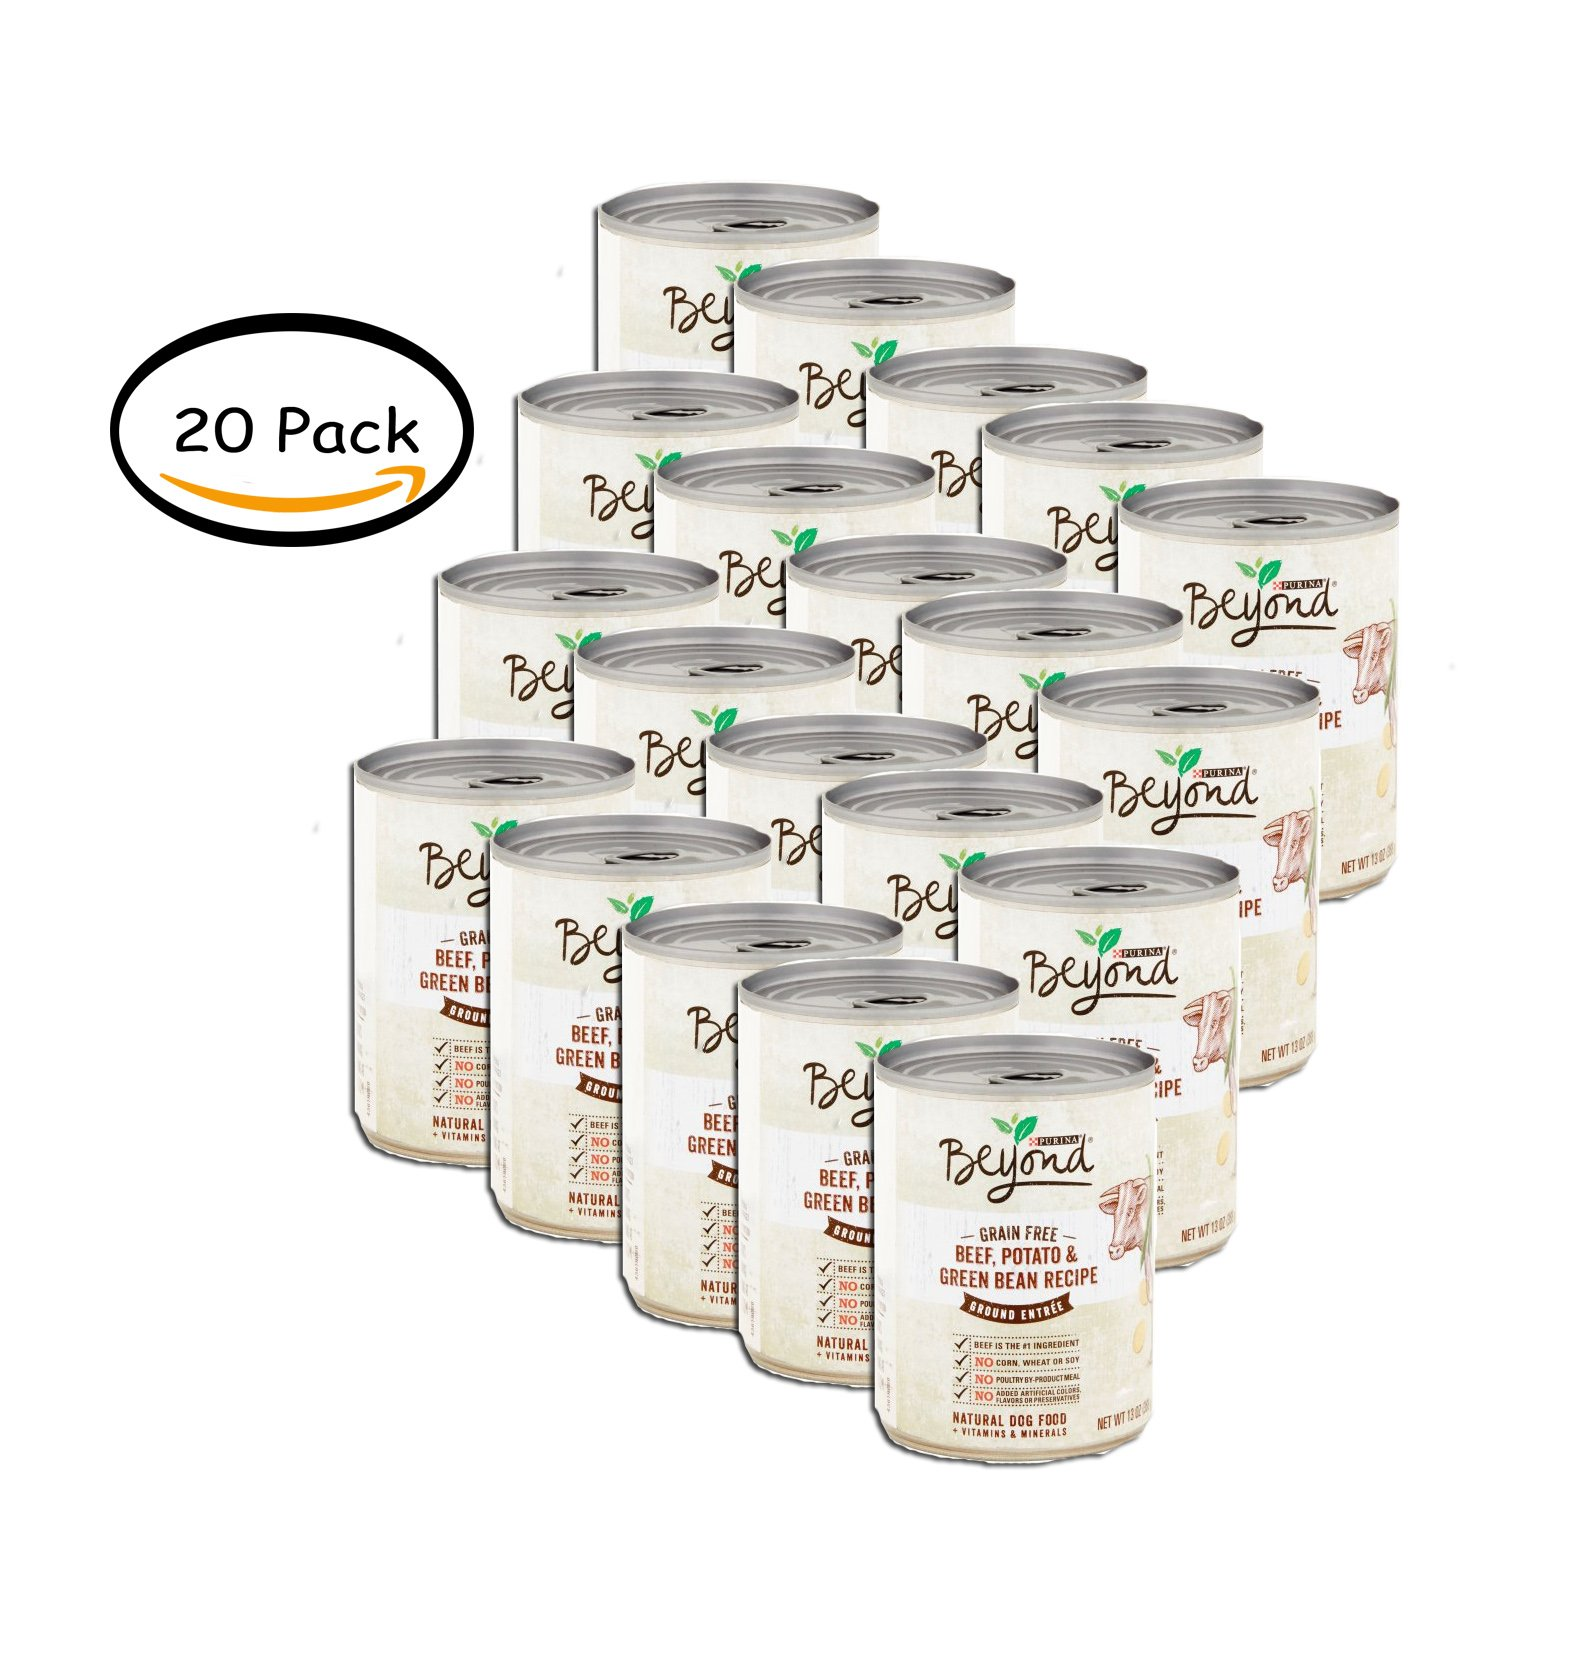 PACK OF 20 - Purina Beyond Grain Free Beef, Potato & Green Bean Recipe Ground Entree Dog Food 13 oz. Can